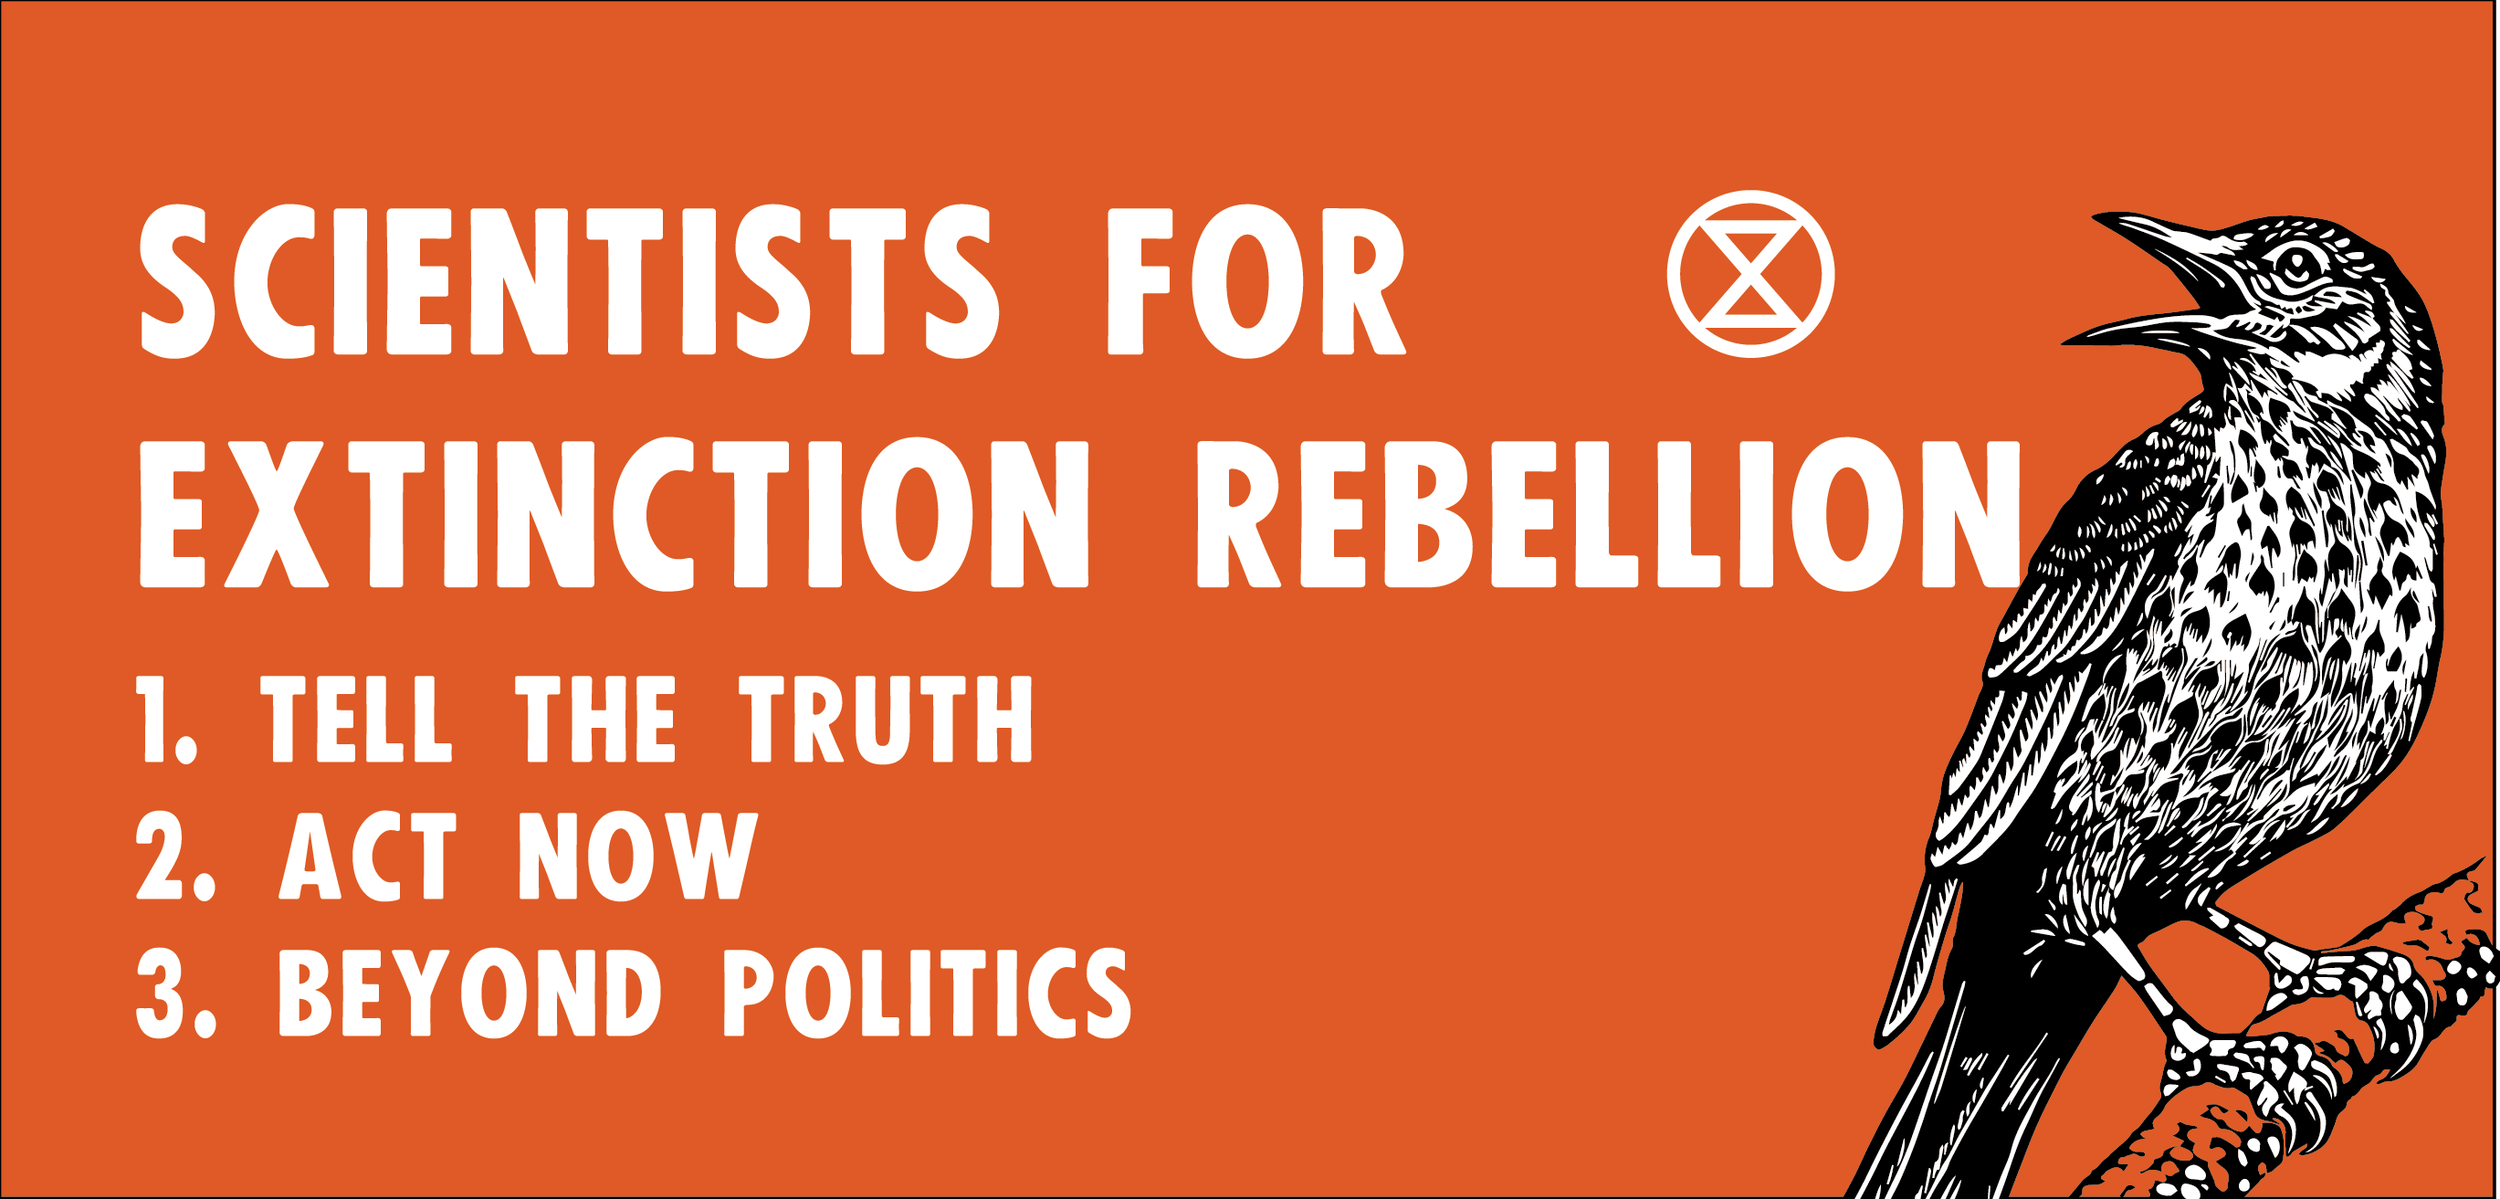 Scientists for Extinction Rebellion